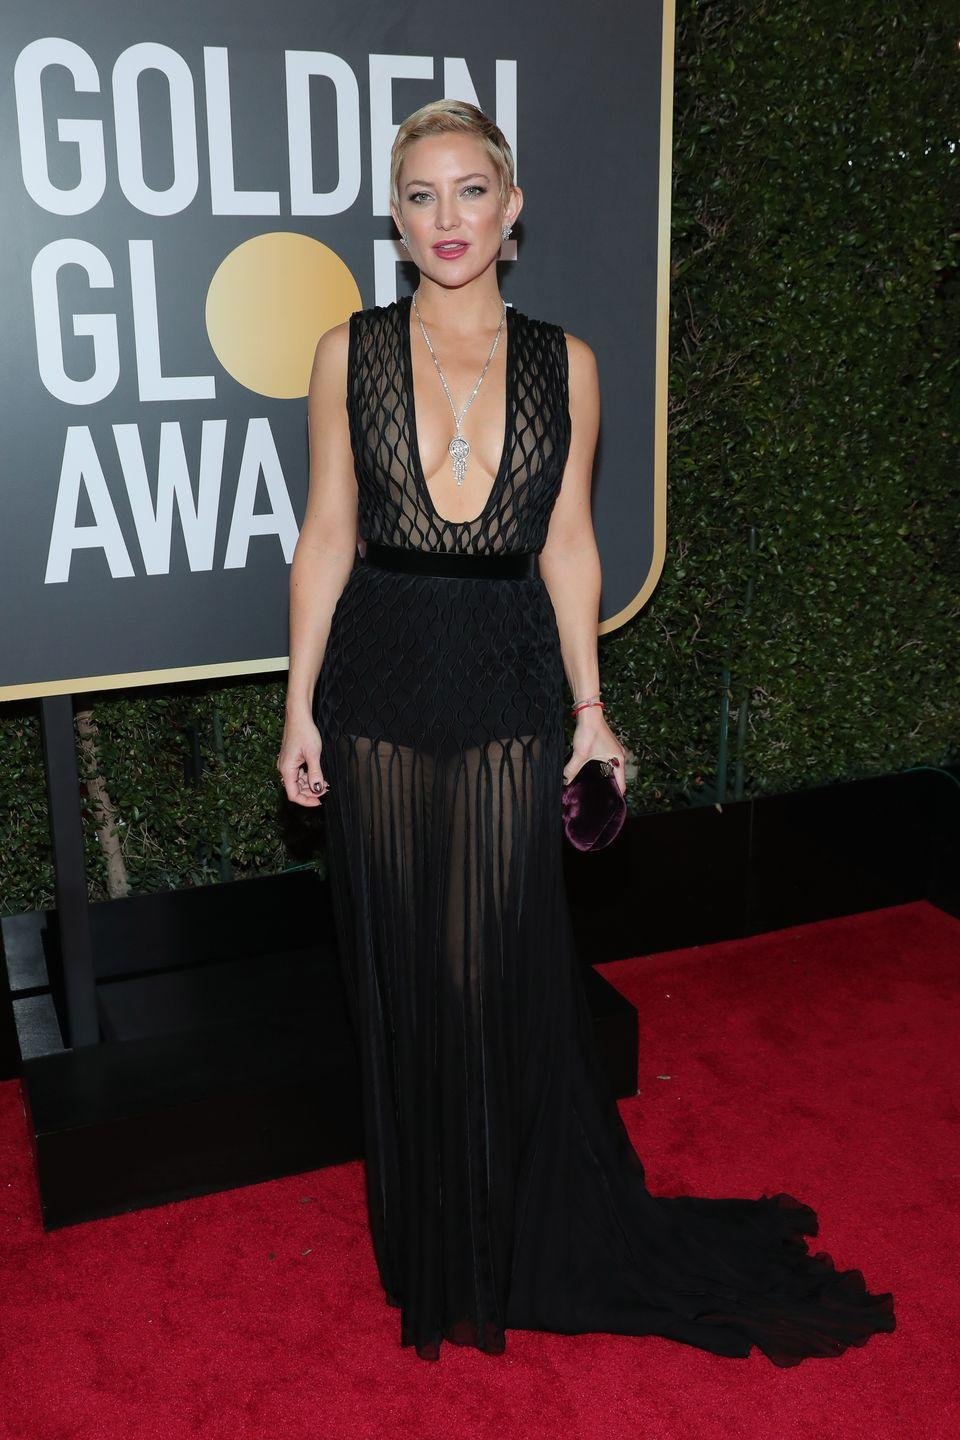 "<p>The Fabletics founder has always had an insanely fit physique. Her secret sauce includes Pilates (you can check out Kate's favorite moves <a href=""https://www.womenshealthmag.com/fitness/a19973467/kate-hudson-pilates-workout/"" rel=""nofollow noopener"" target=""_blank"" data-ylk=""slk:here"" class=""link rapid-noclick-resp"">here</a>) and Weight Watchers.</p>"